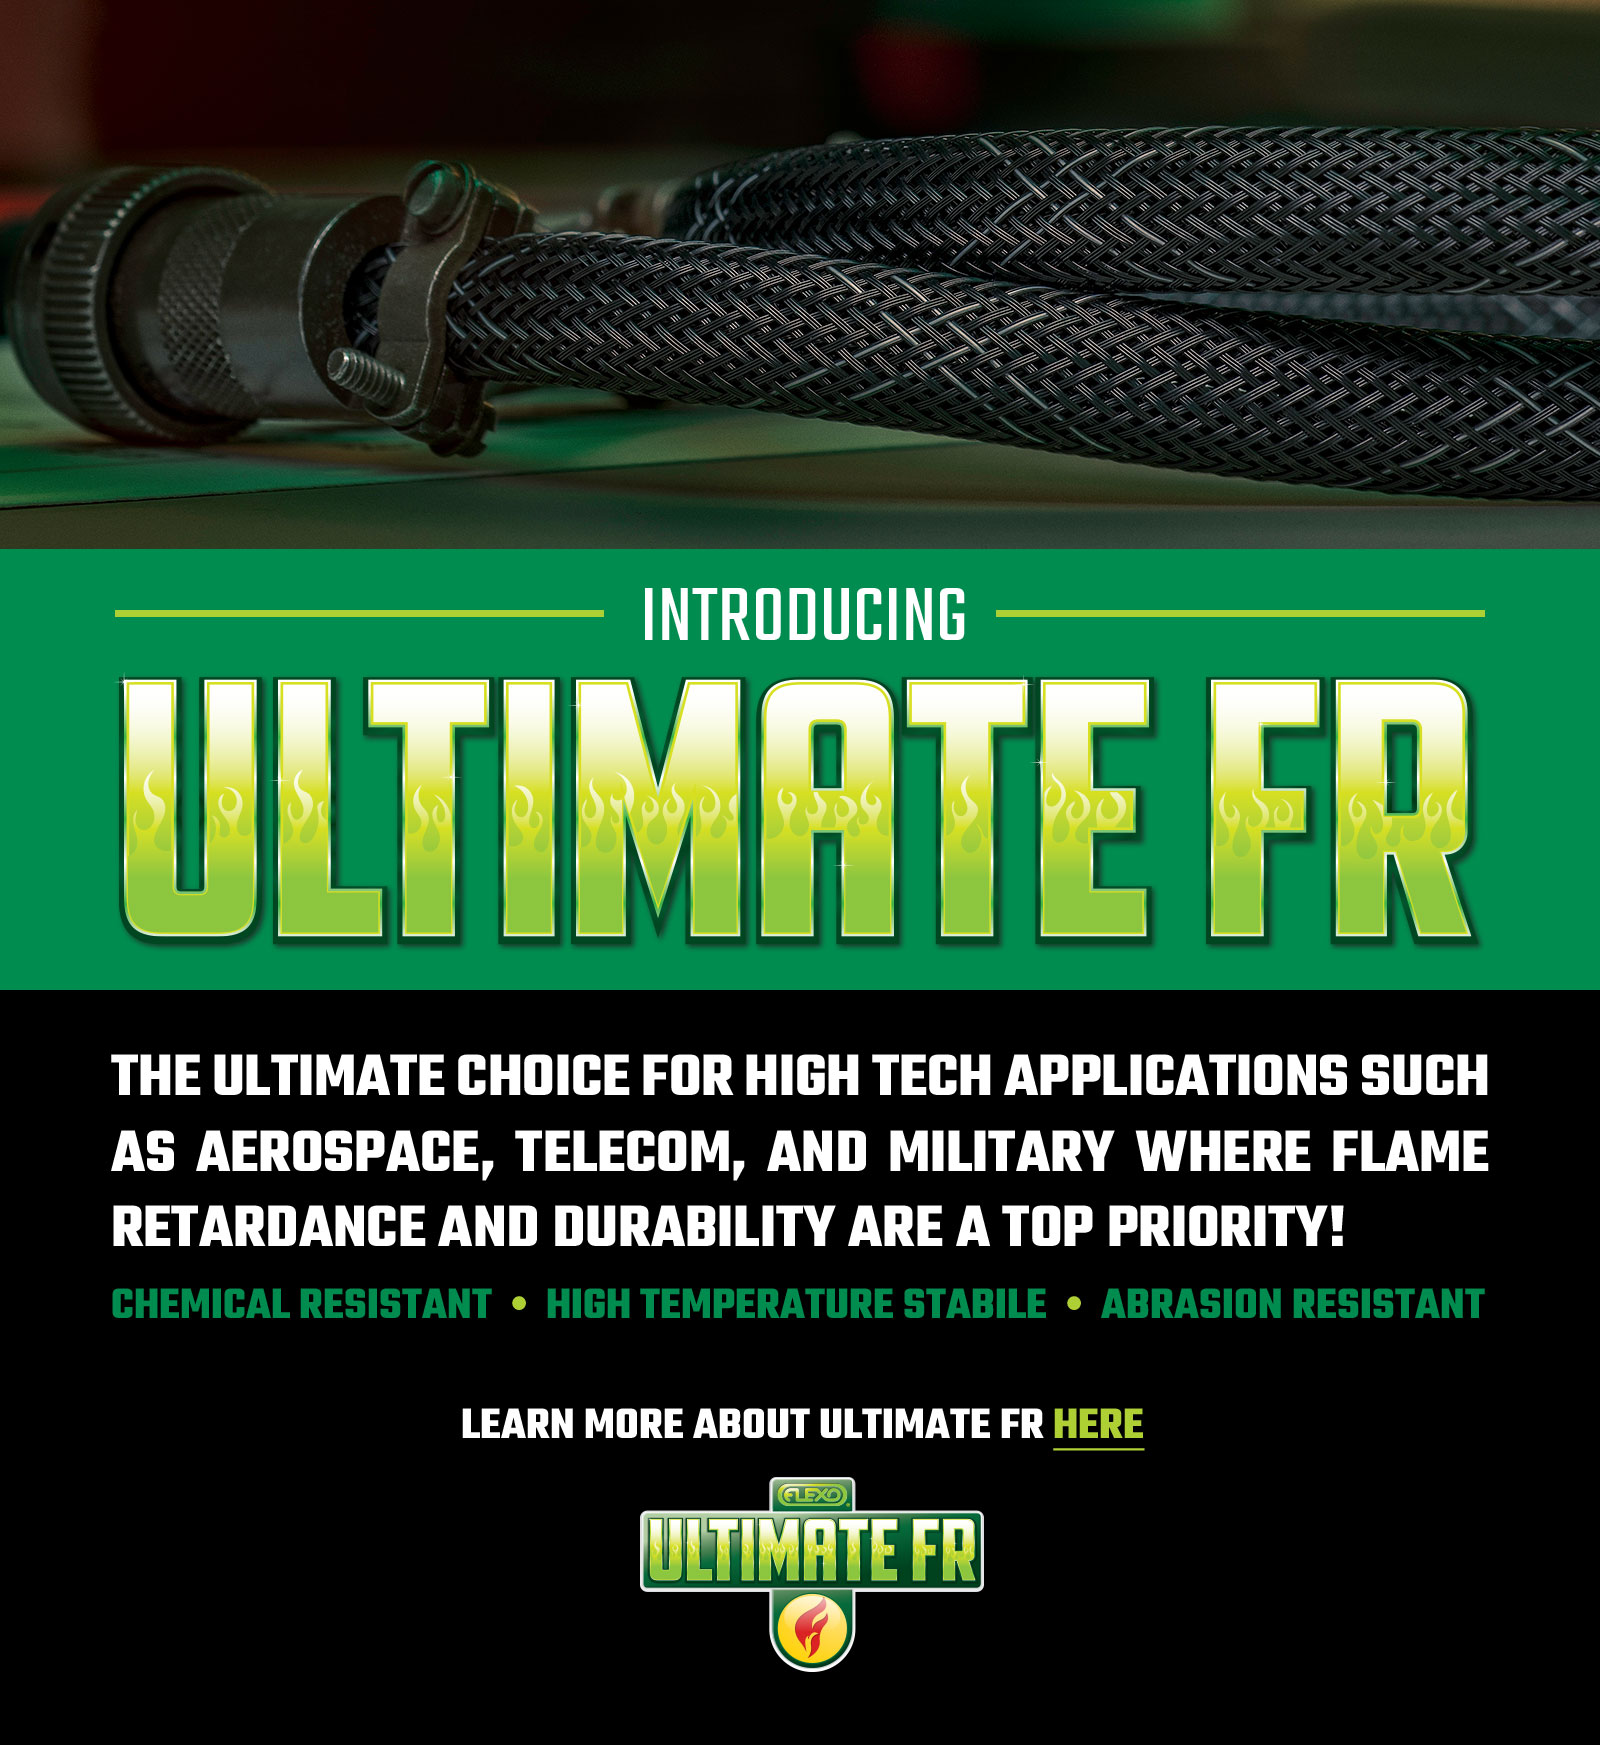 Introducing Ultimate FR